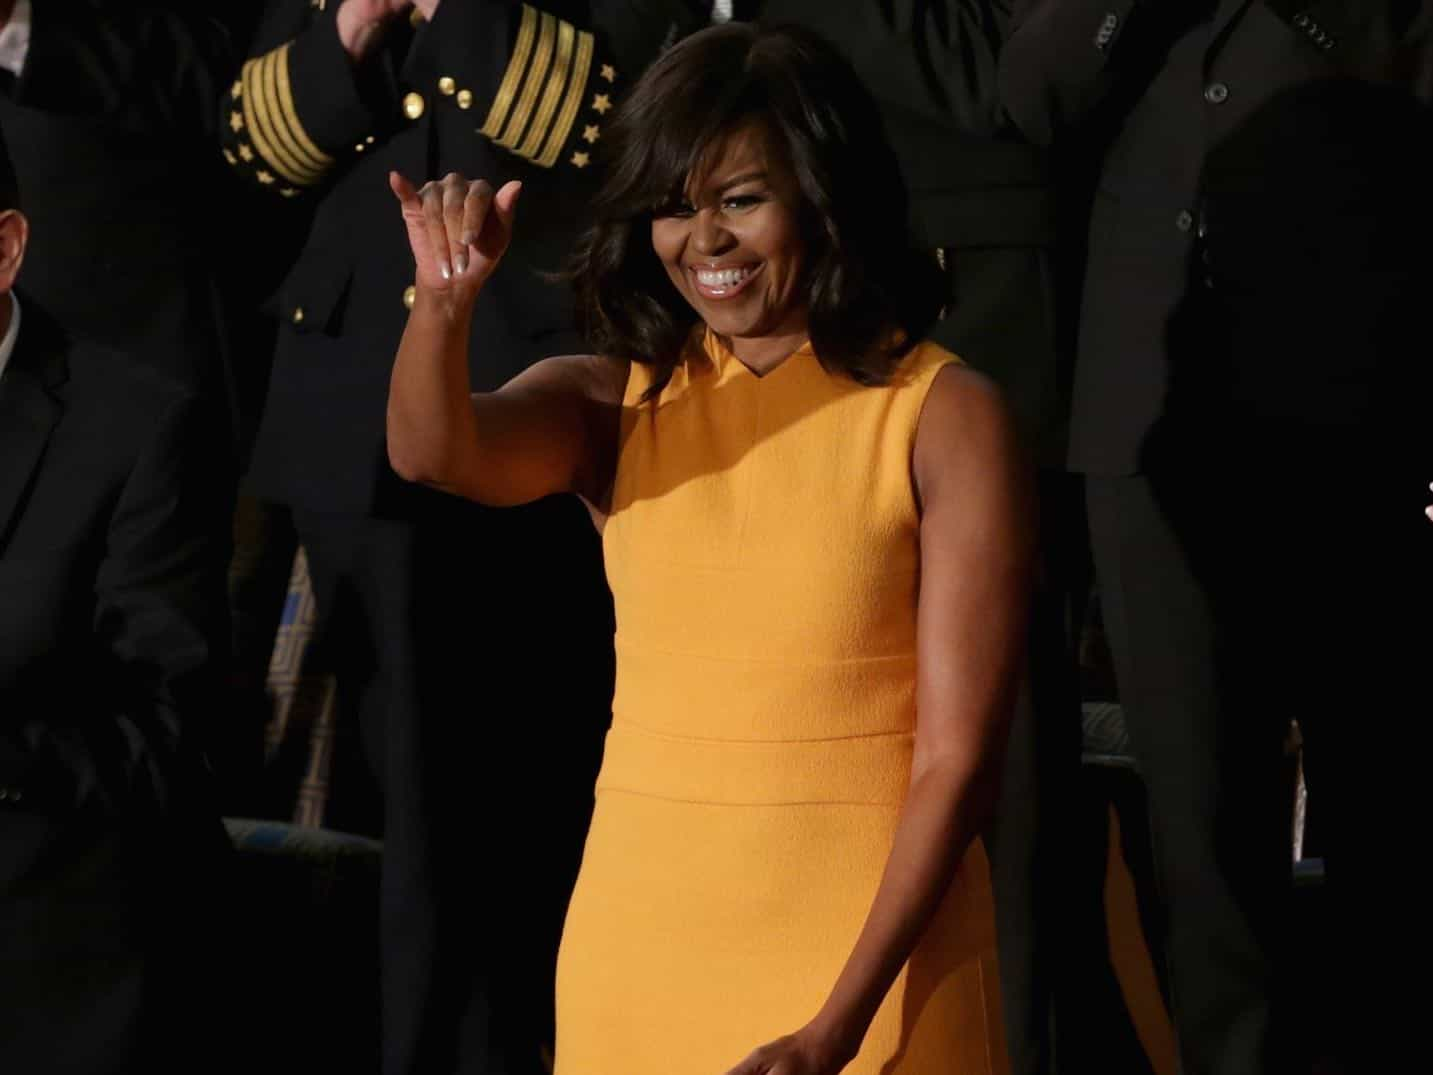 Conservatives Criticize Michelle Obama For Bare Arms, Stay